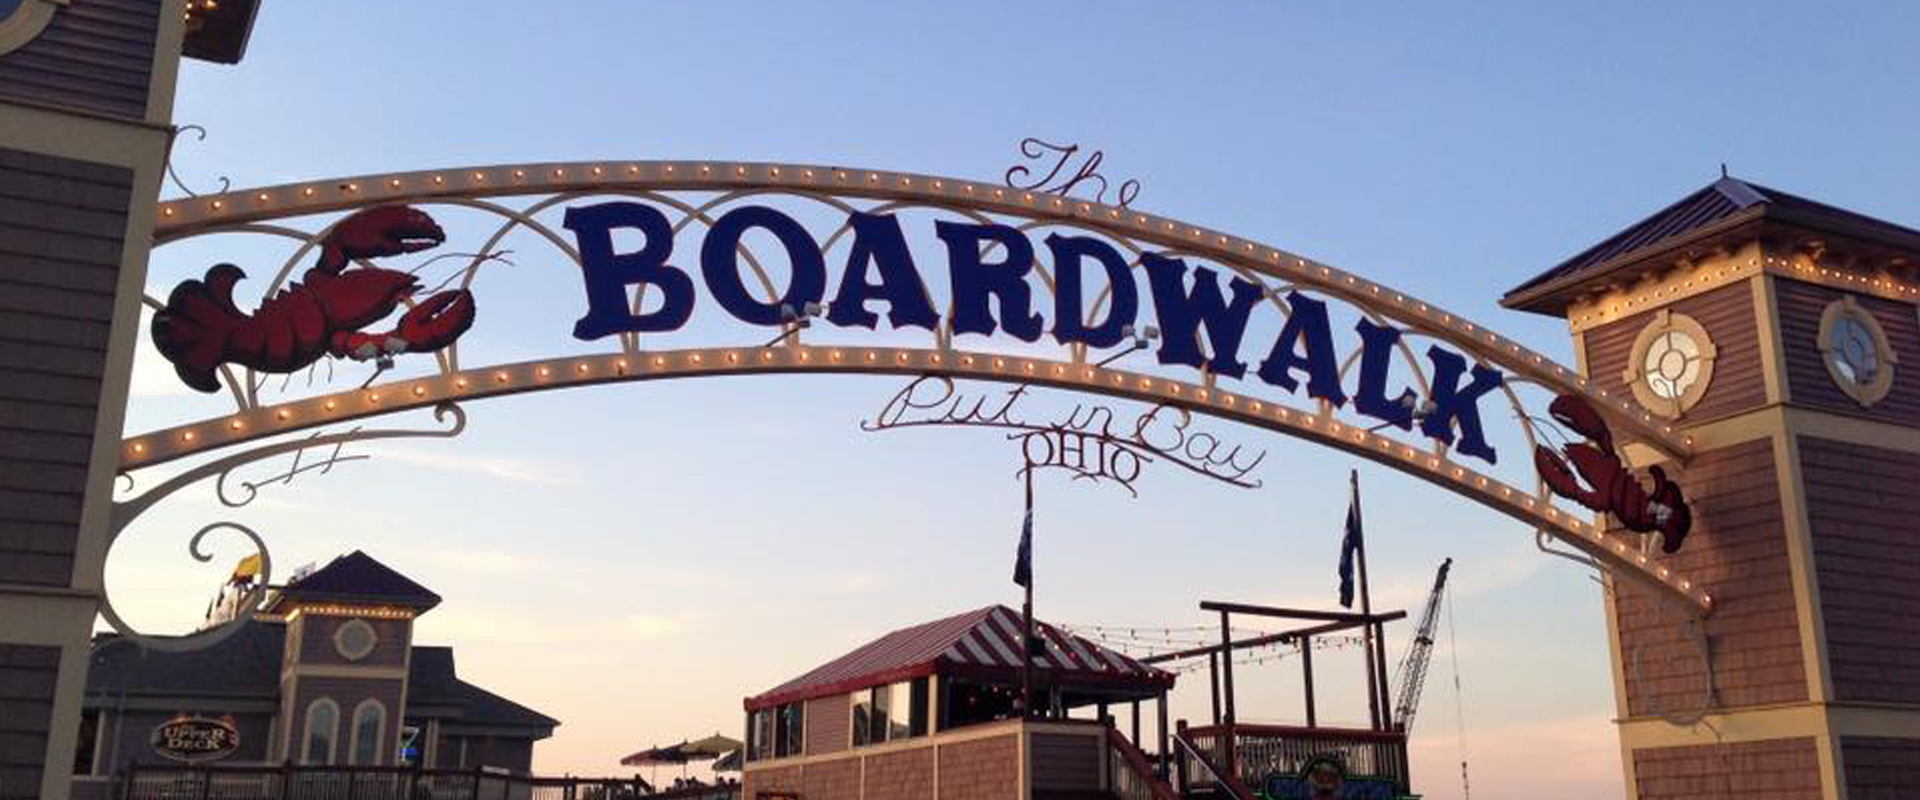 The Boardwalk Family of Restaurants